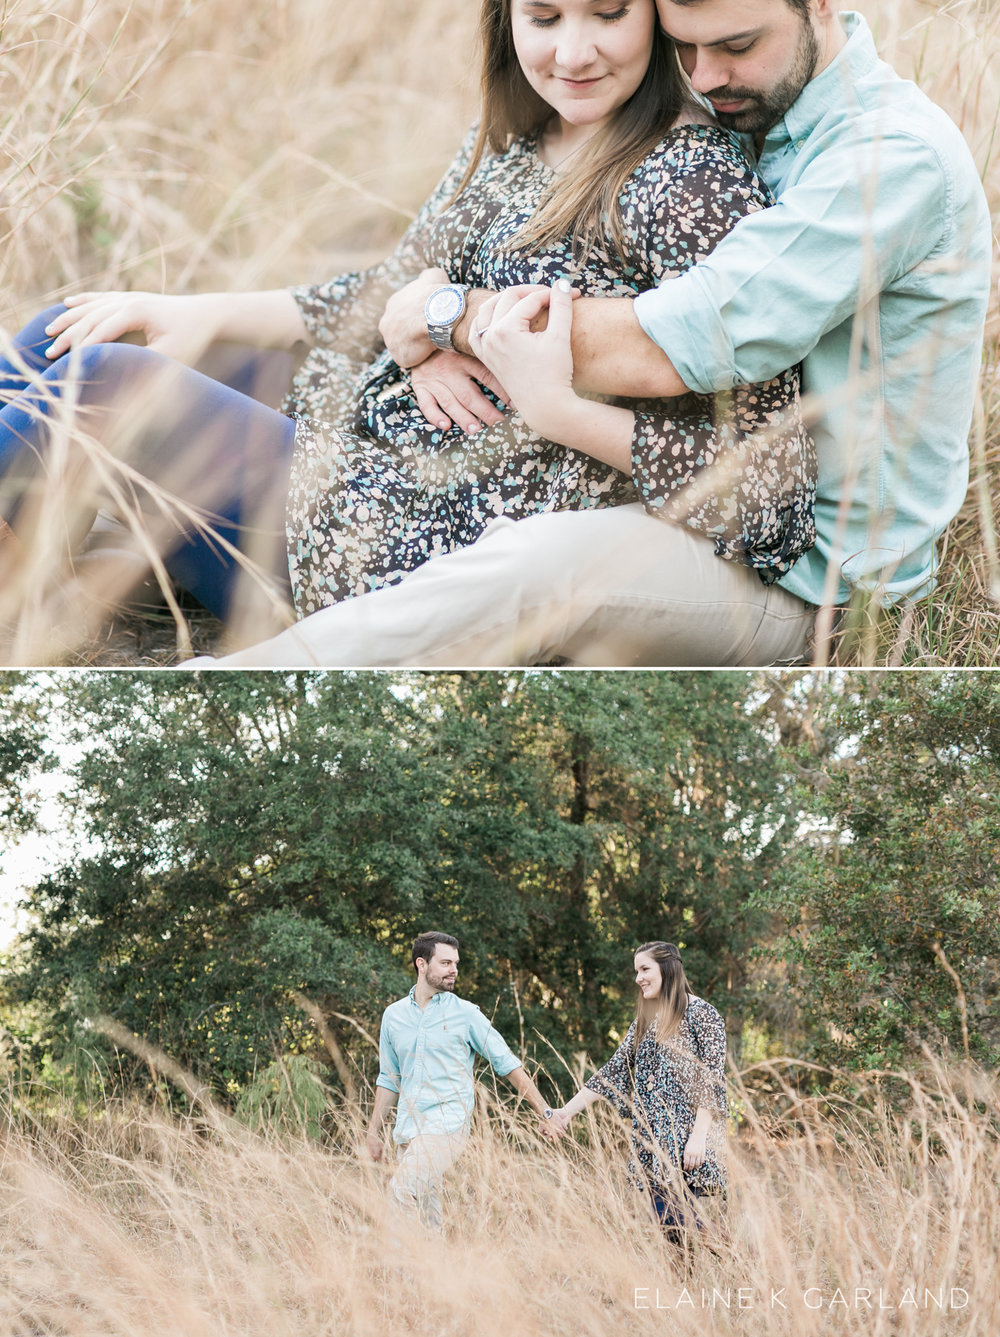 eagle-lake-park-engagement-session-12.jpg